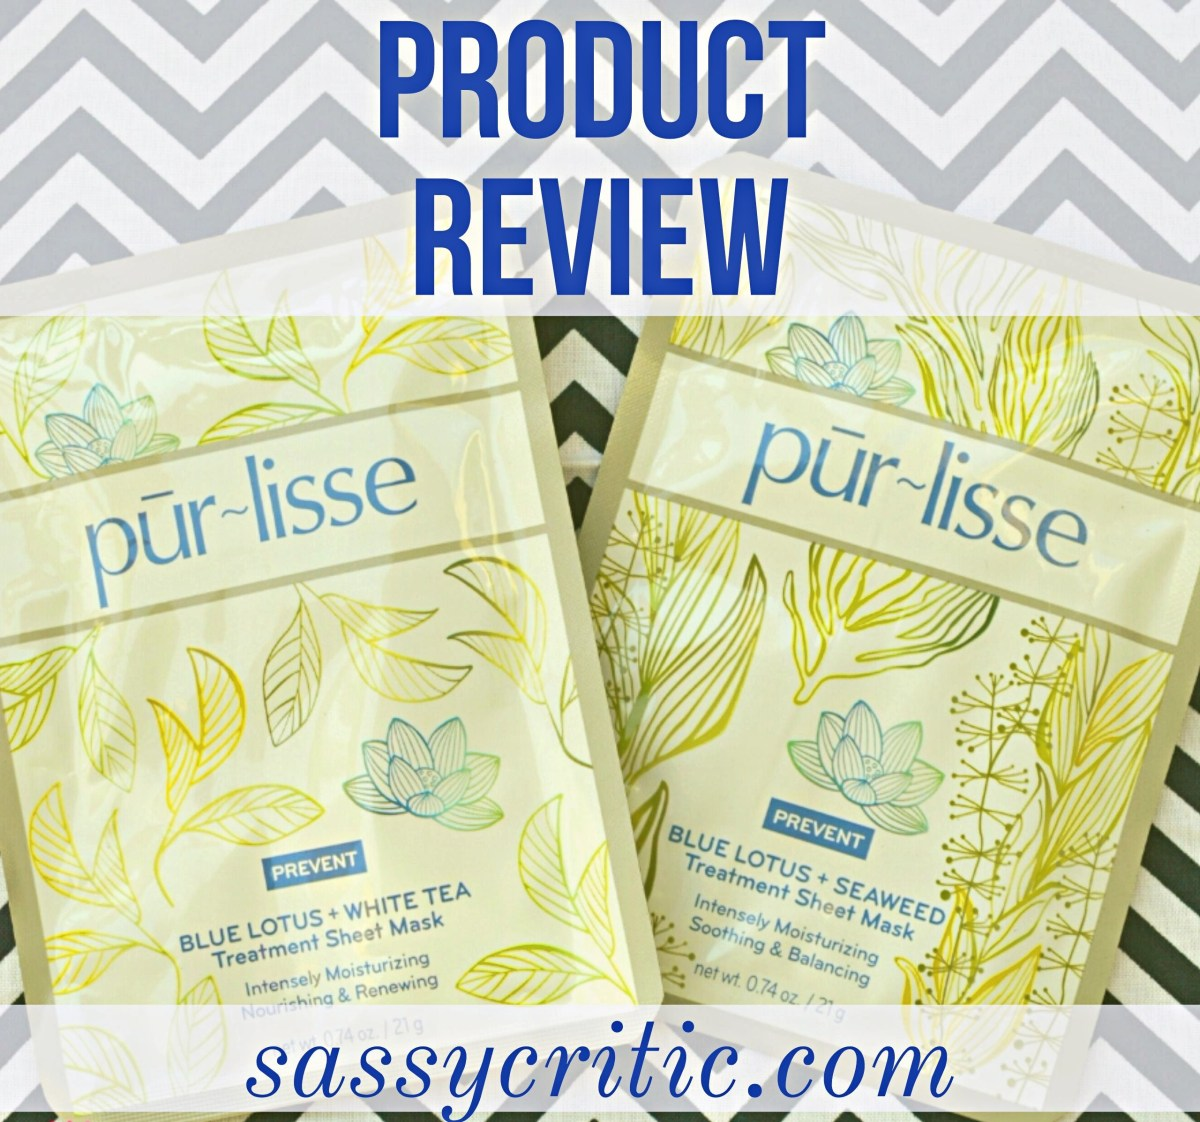 Product Review: Purlisse Facial Sheet Mask